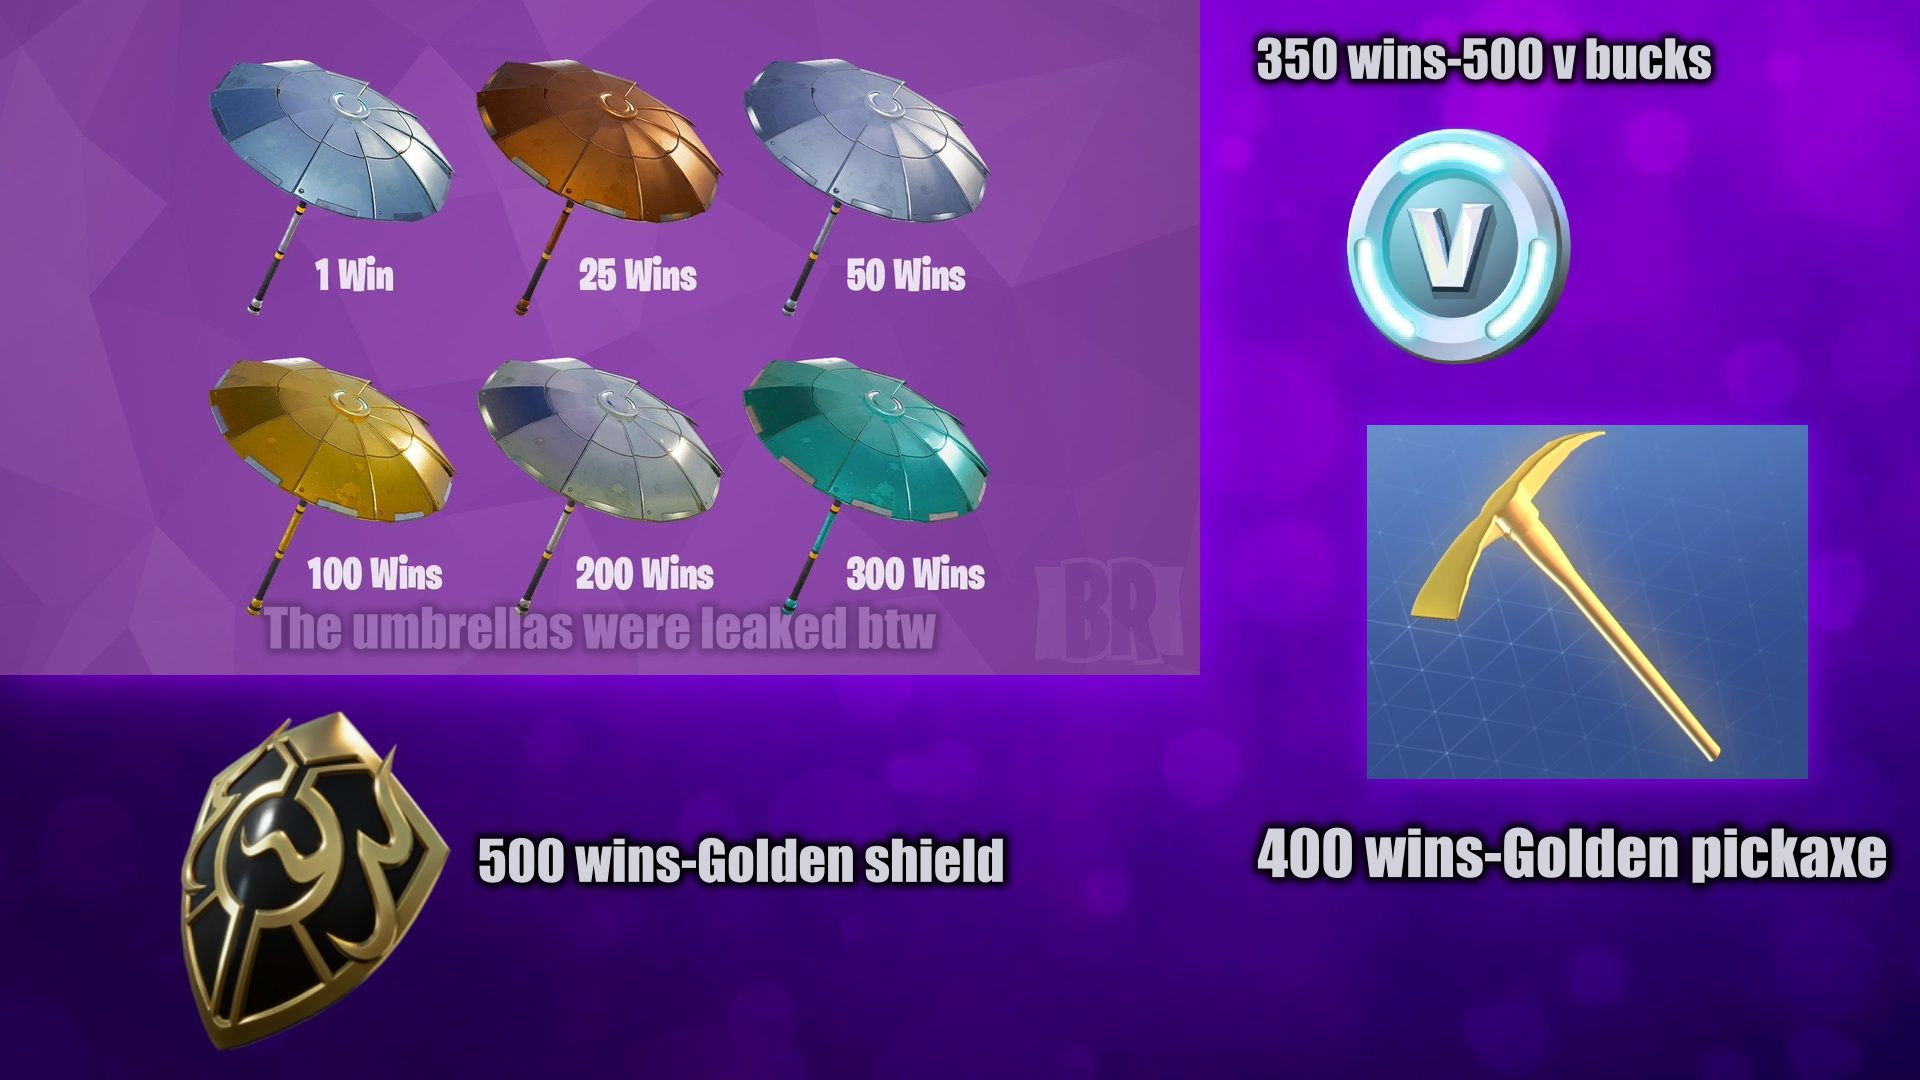 What About Some Long Term Challenges Via R Fortnitebr Fortnite Victorious Concept Explore the r/fortnitebr subreddit on imgur, the best place to discover awesome images and gifs. long term challenges via r fortnitebr